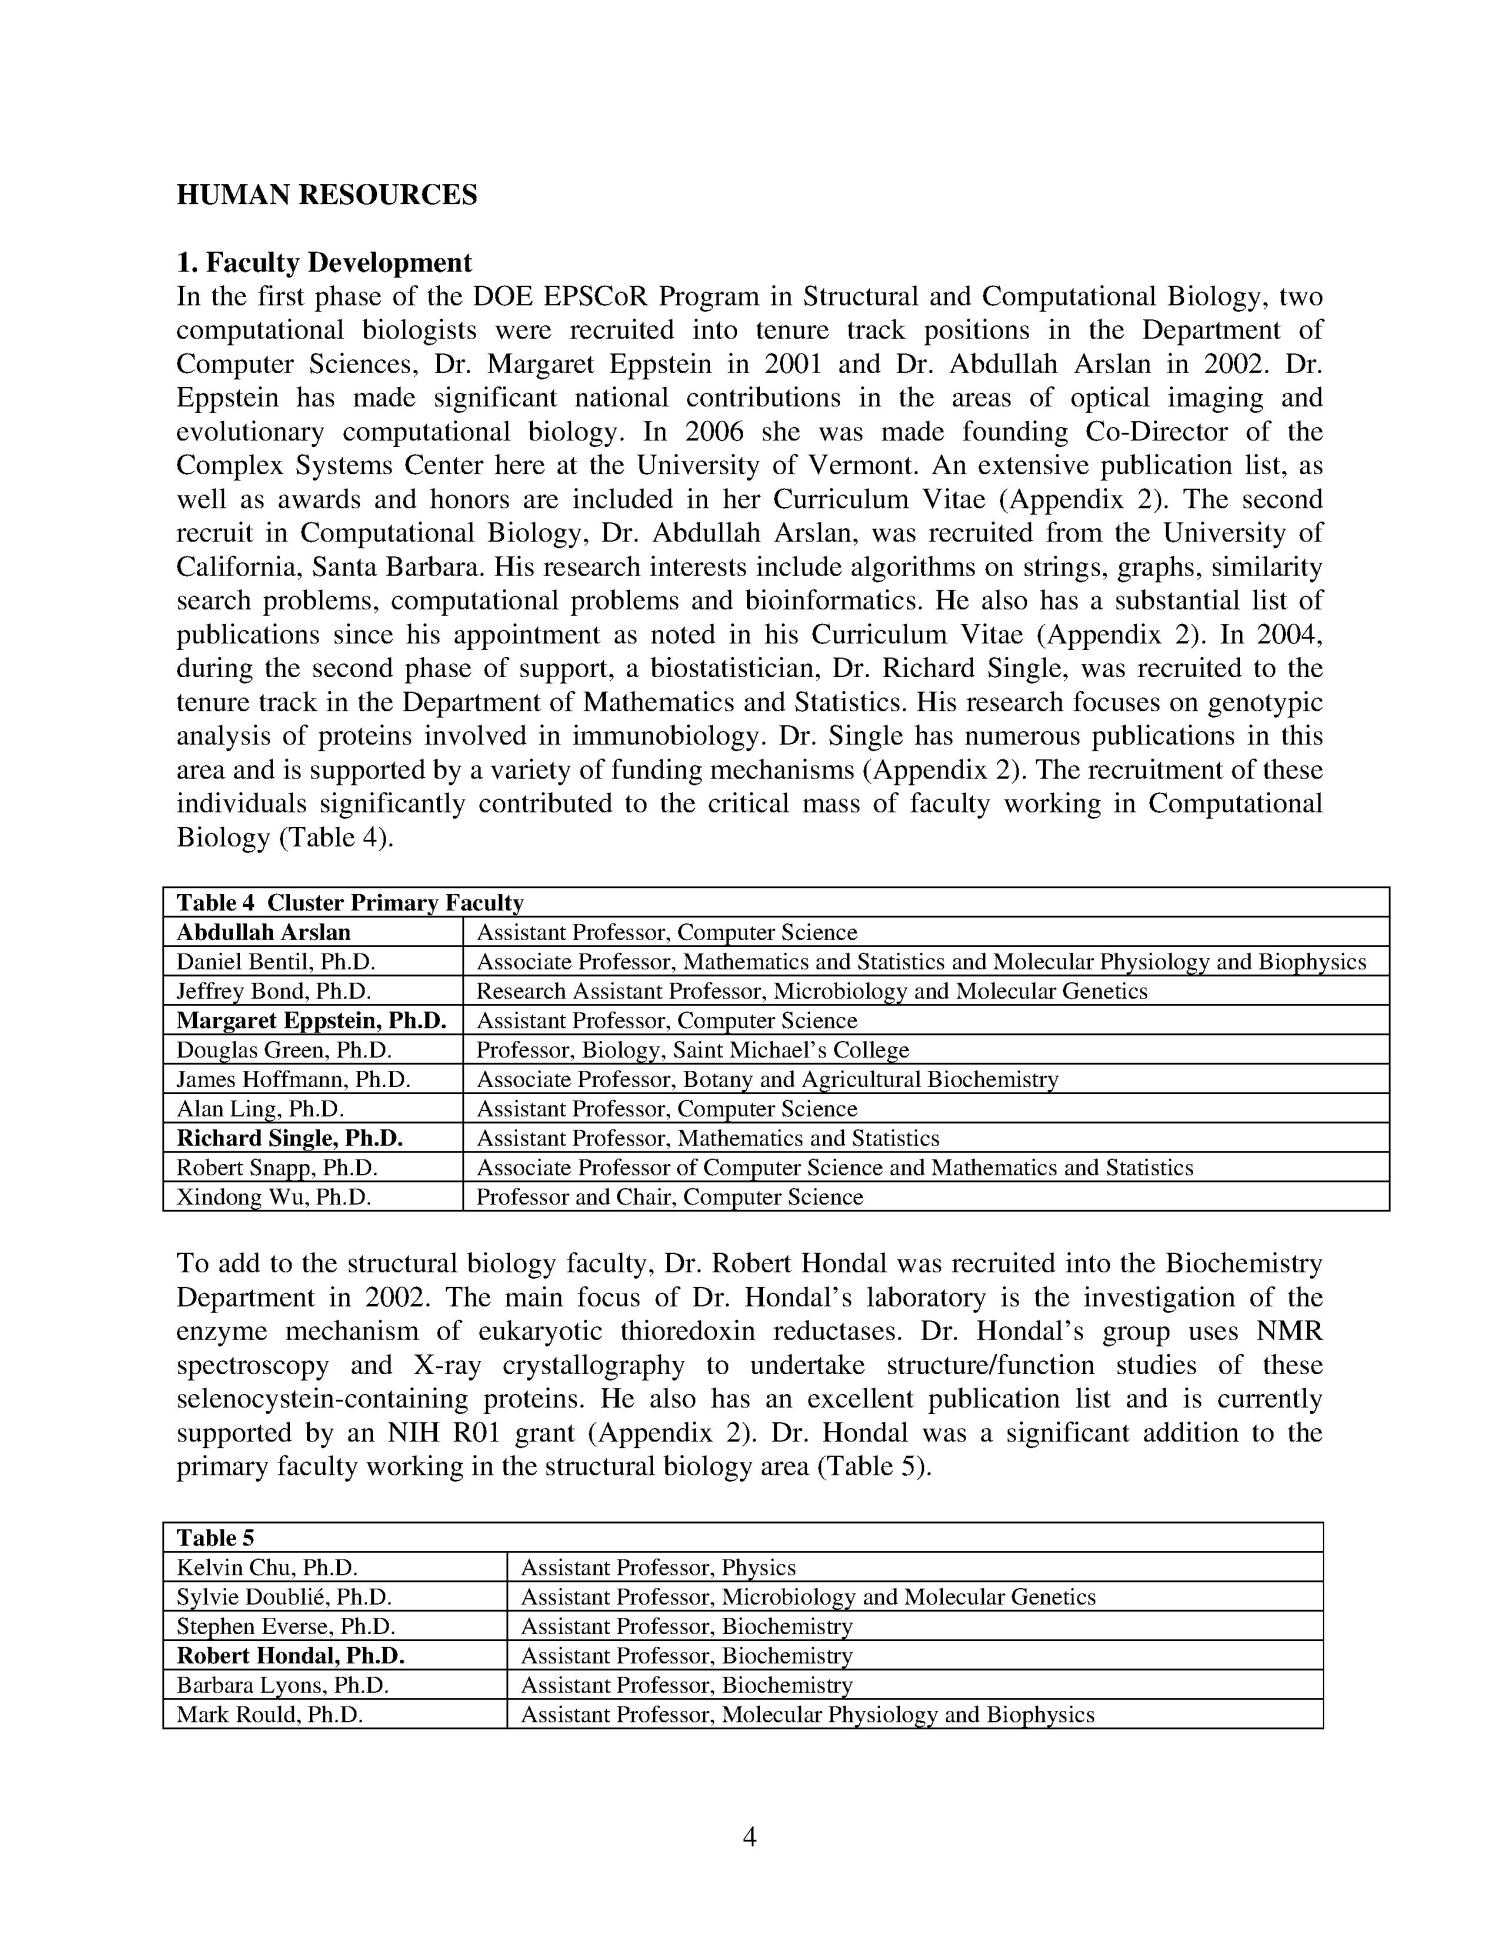 DOE EPSCoR Initiative in Structural and computational Biology/Bioinformatics                                                                                                      [Sequence #]: 4 of 92